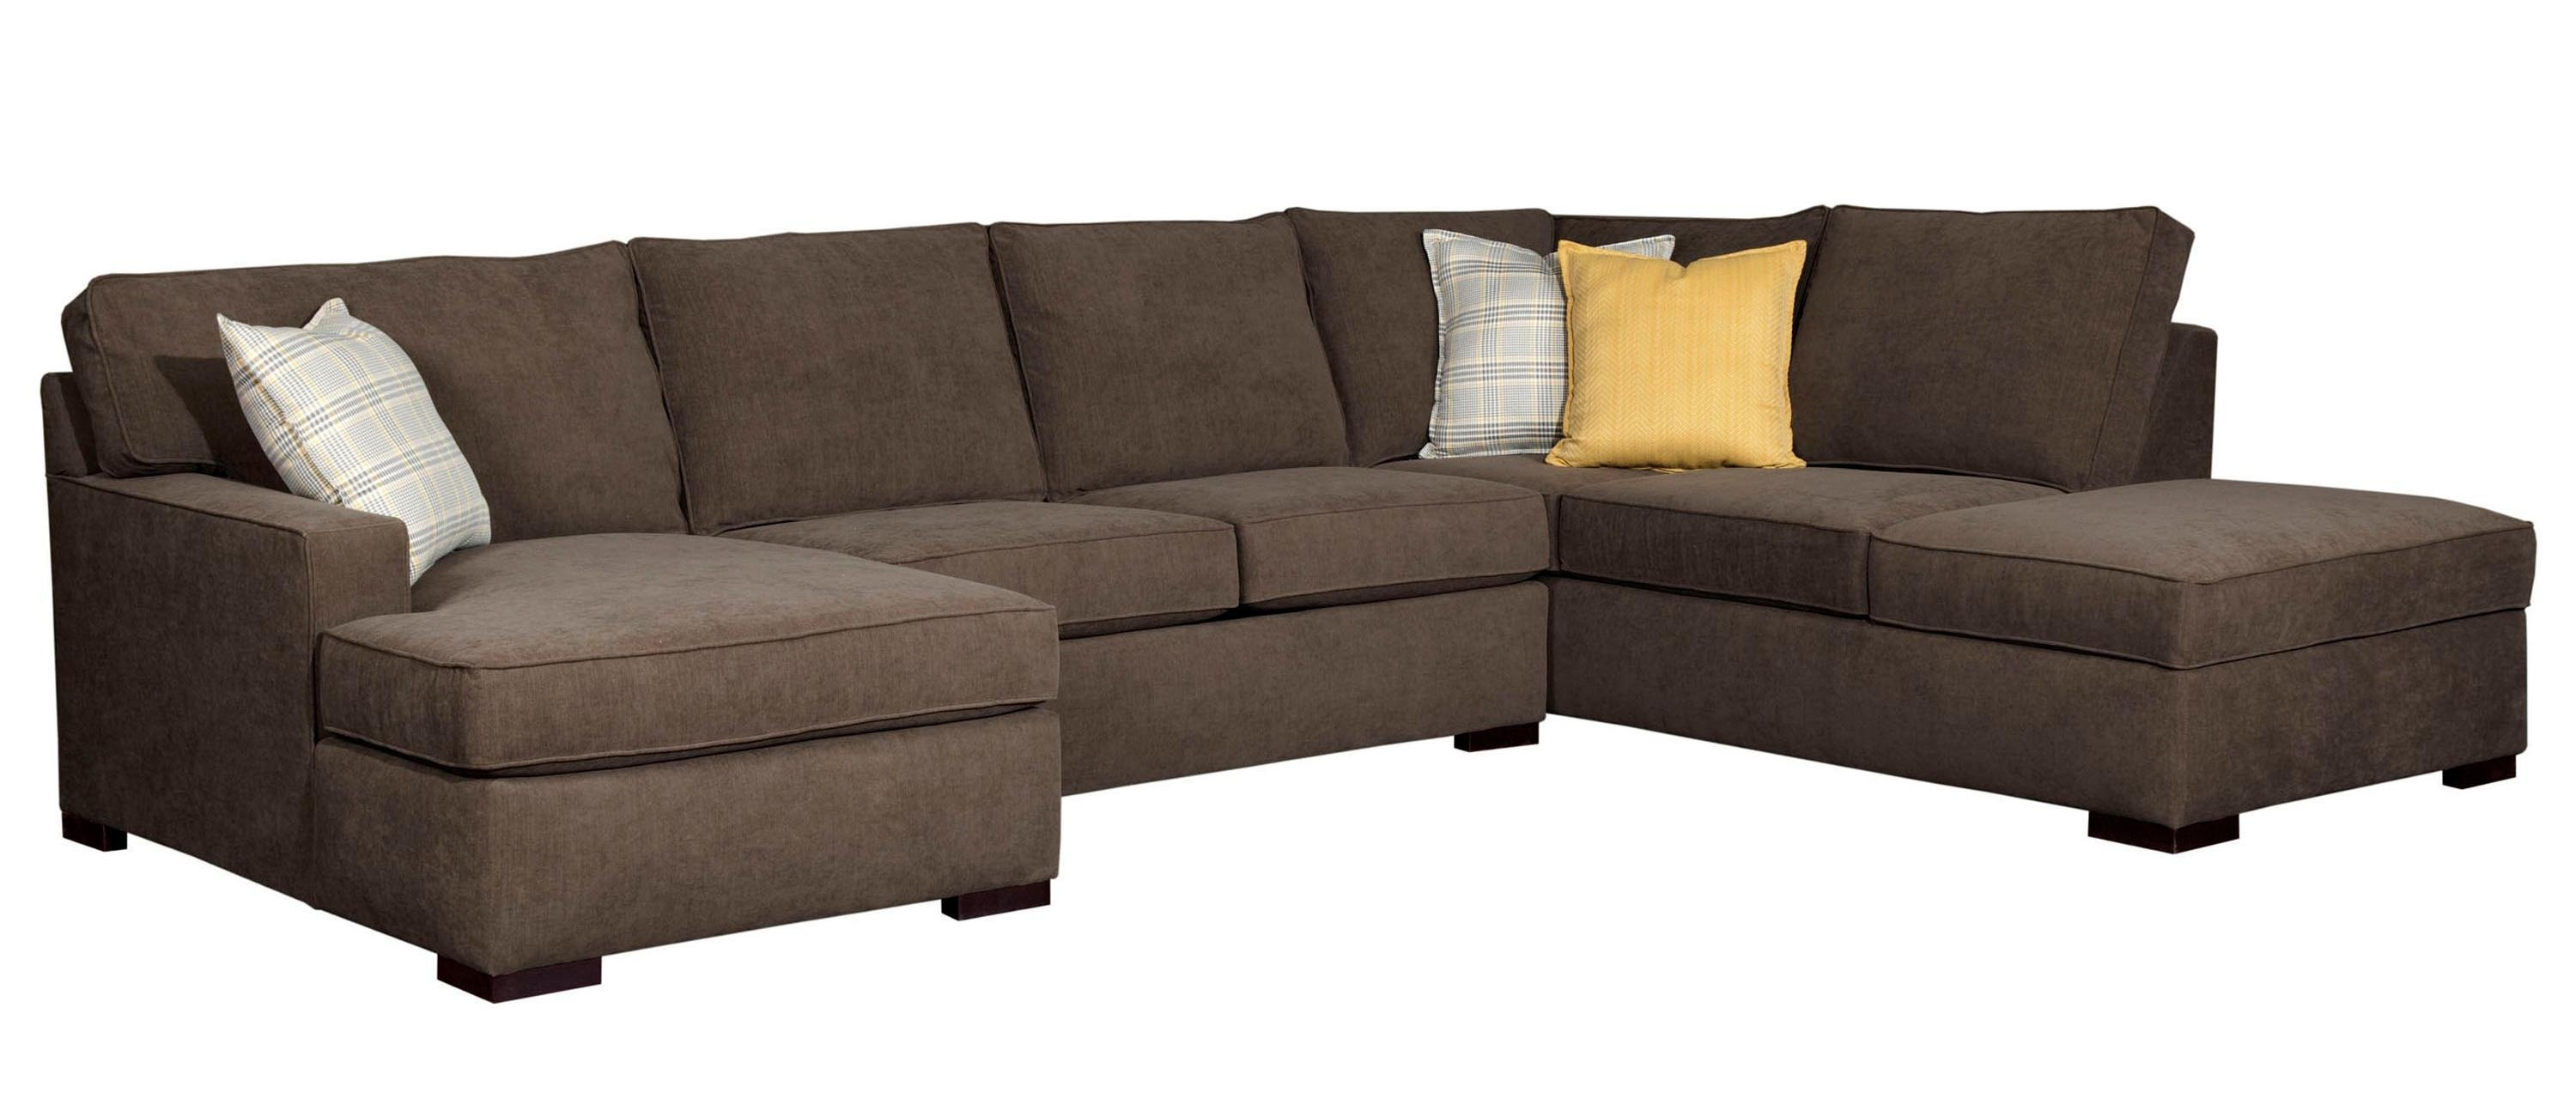 Furniture: Stunning Broyhill Sofas For Enchanting Living Room Pertaining To Broyhill Mckinney Sofas (View 9 of 20)